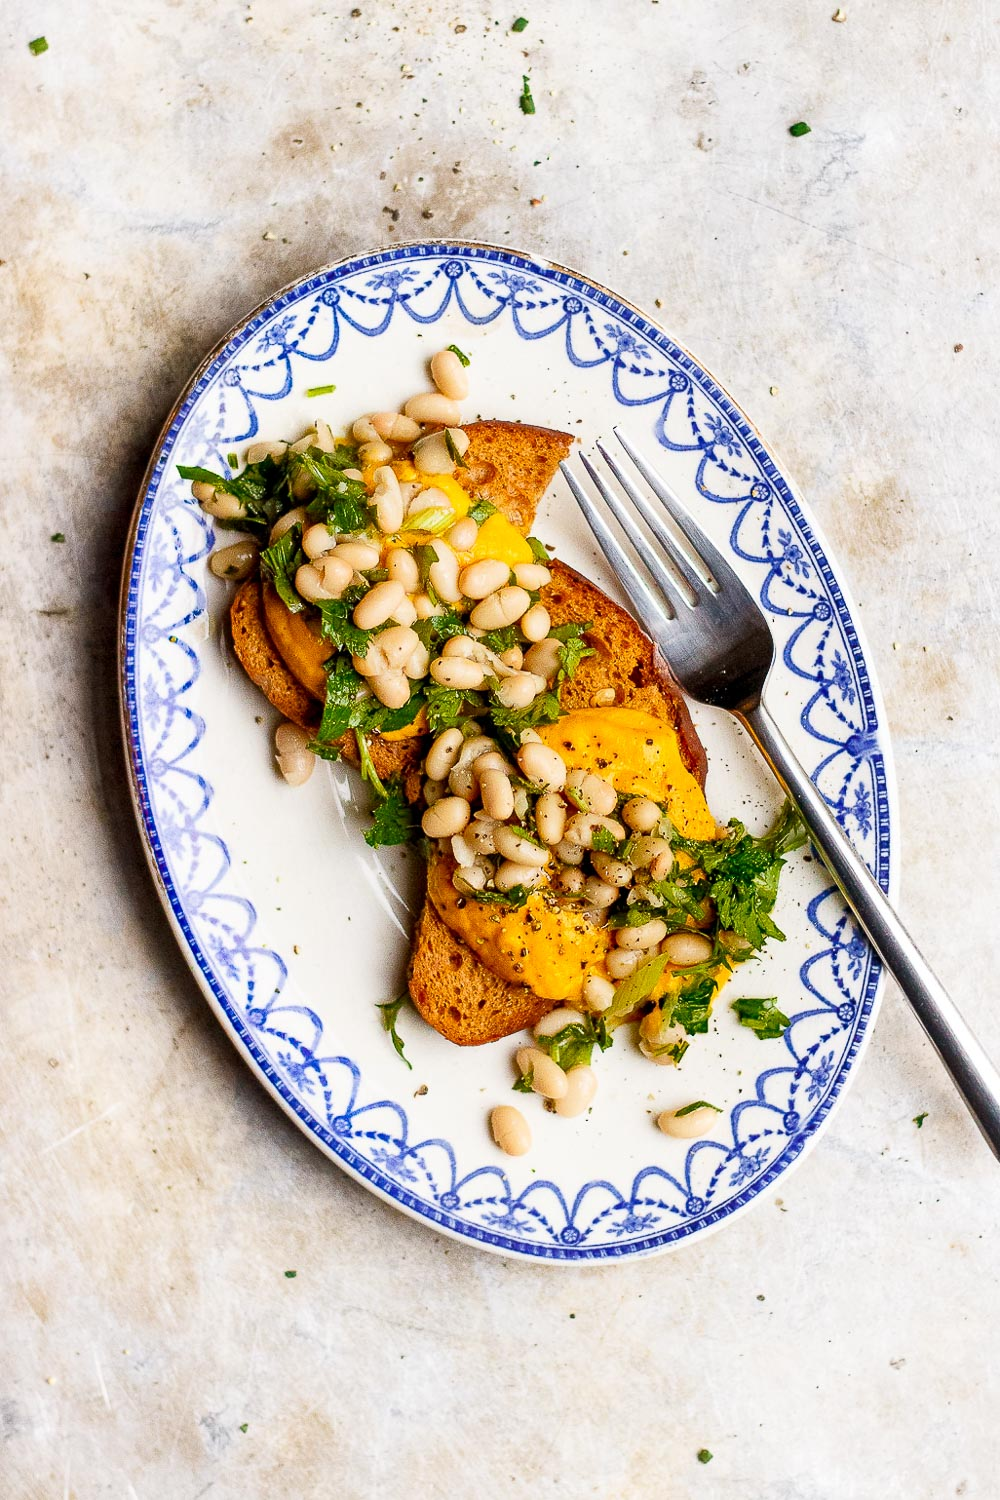 Smoky Butternut Squash Sauce with Beans on Toast